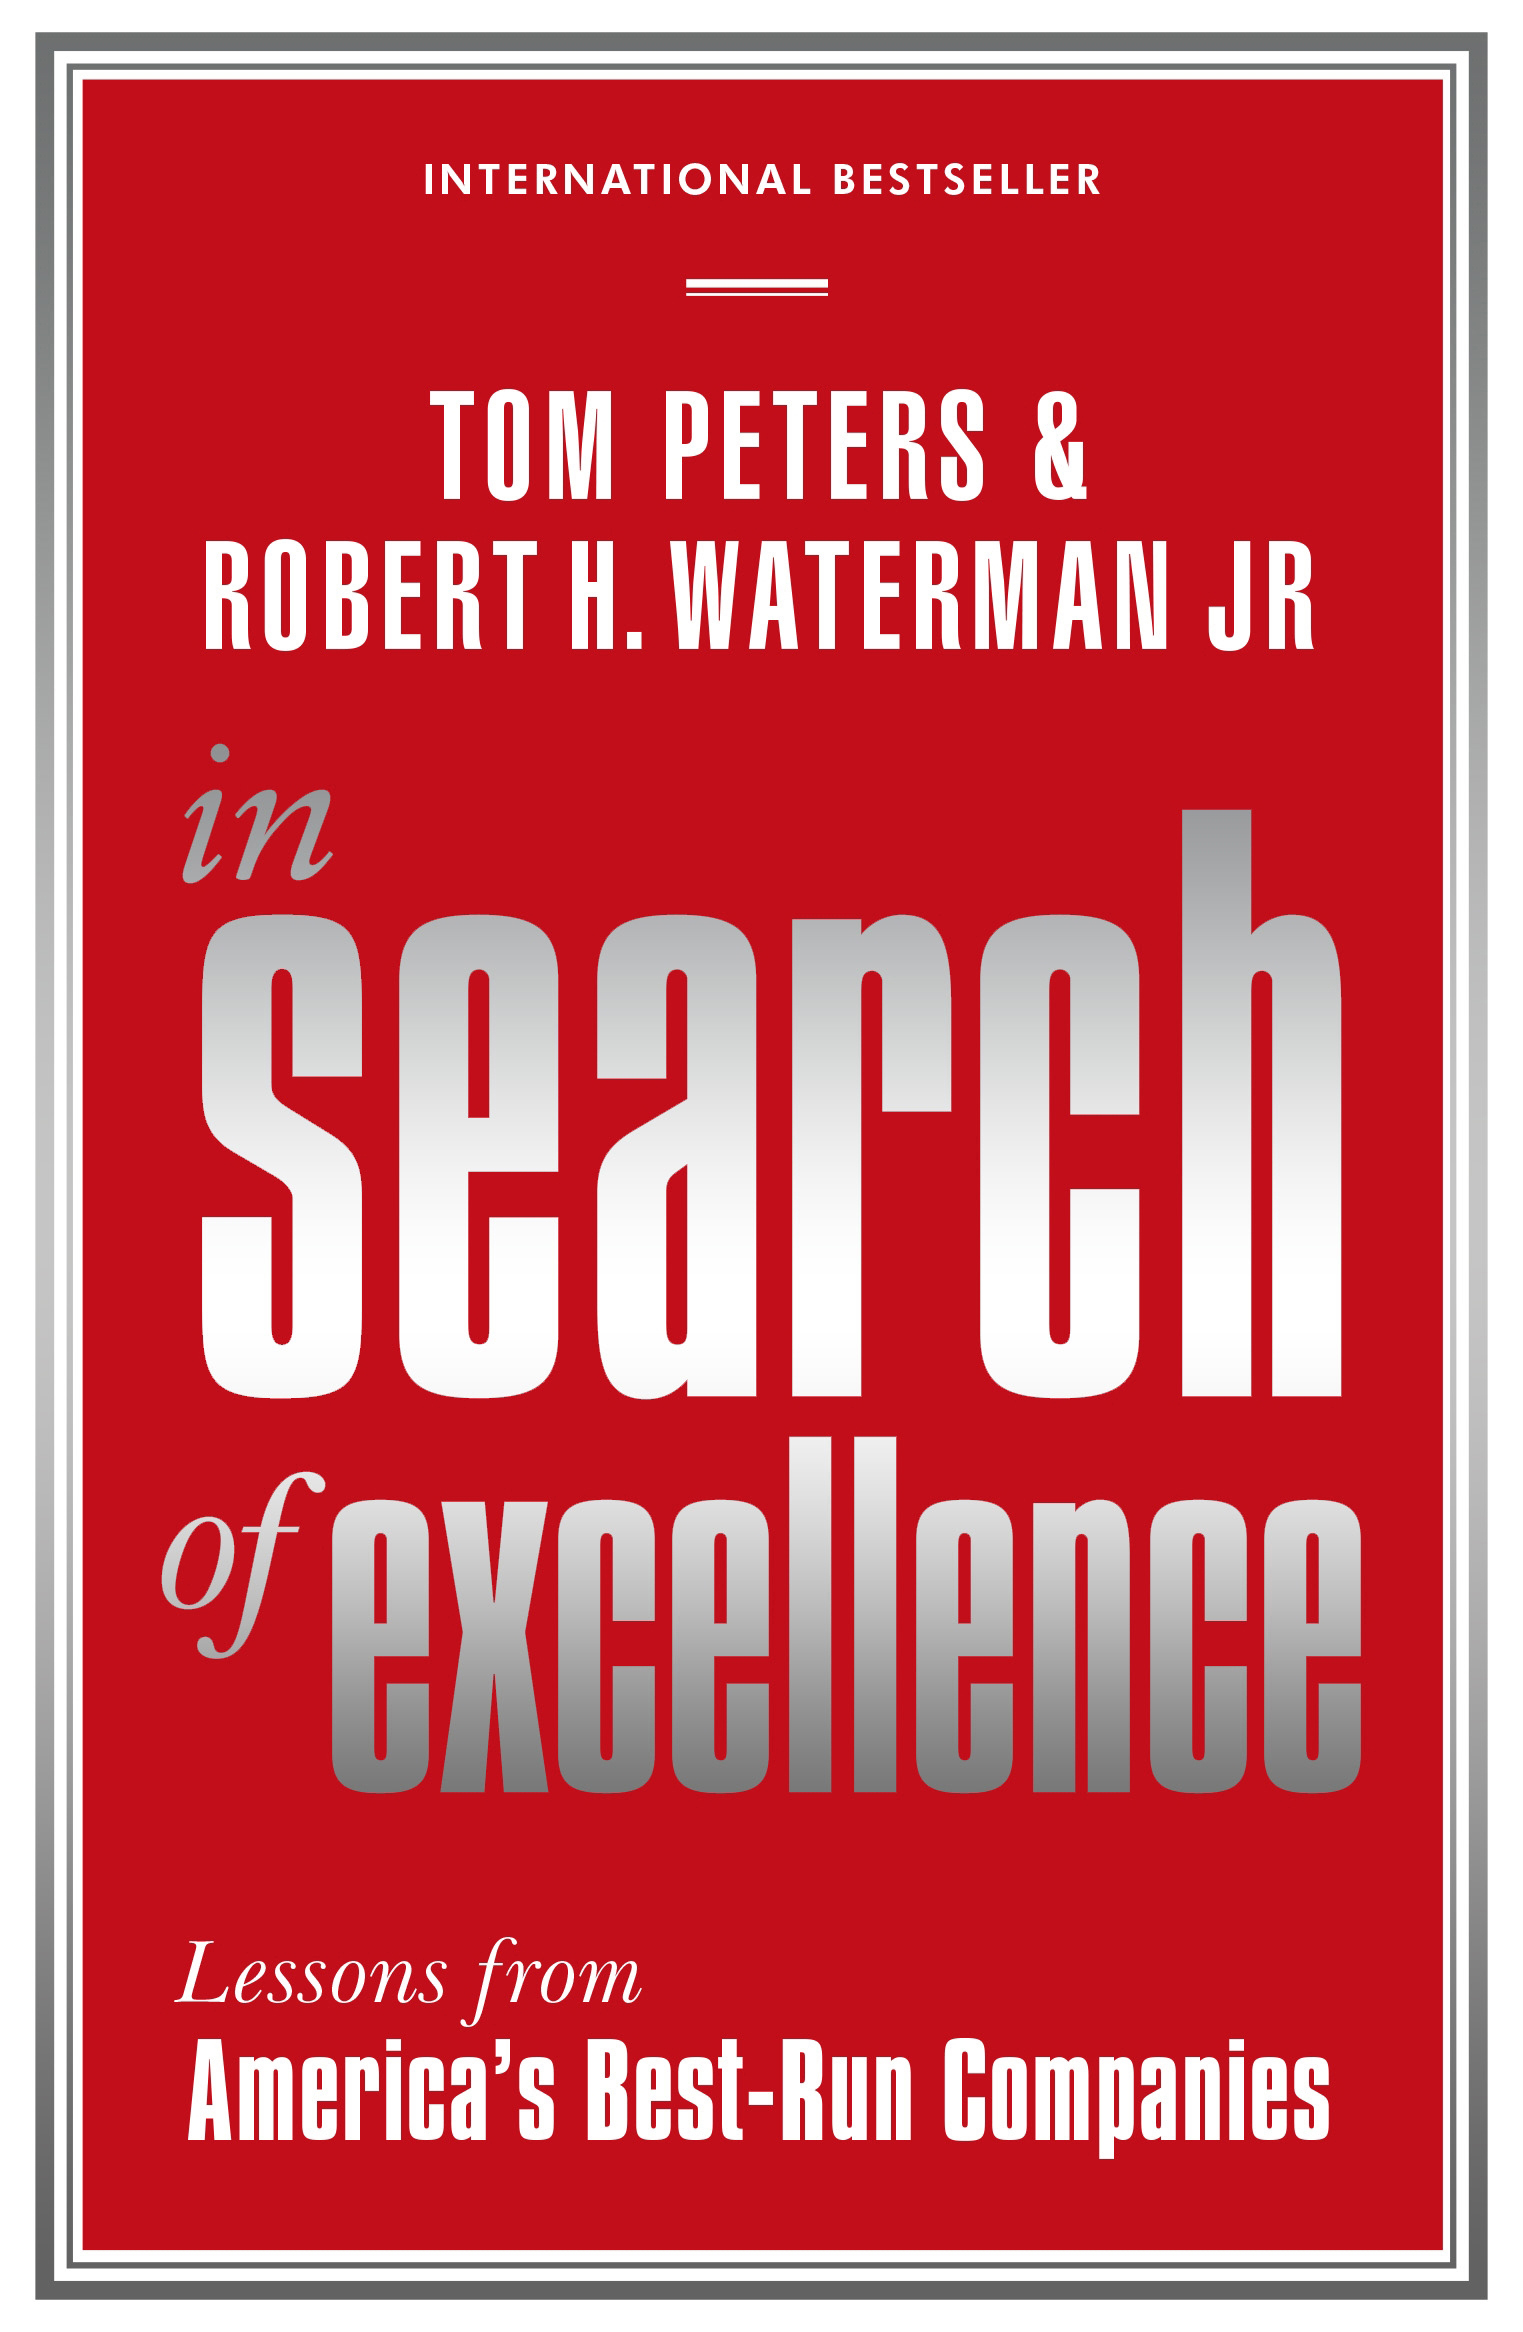 In search of excellence robert h waterman jr and tom peters in search of excellence publicscrutiny